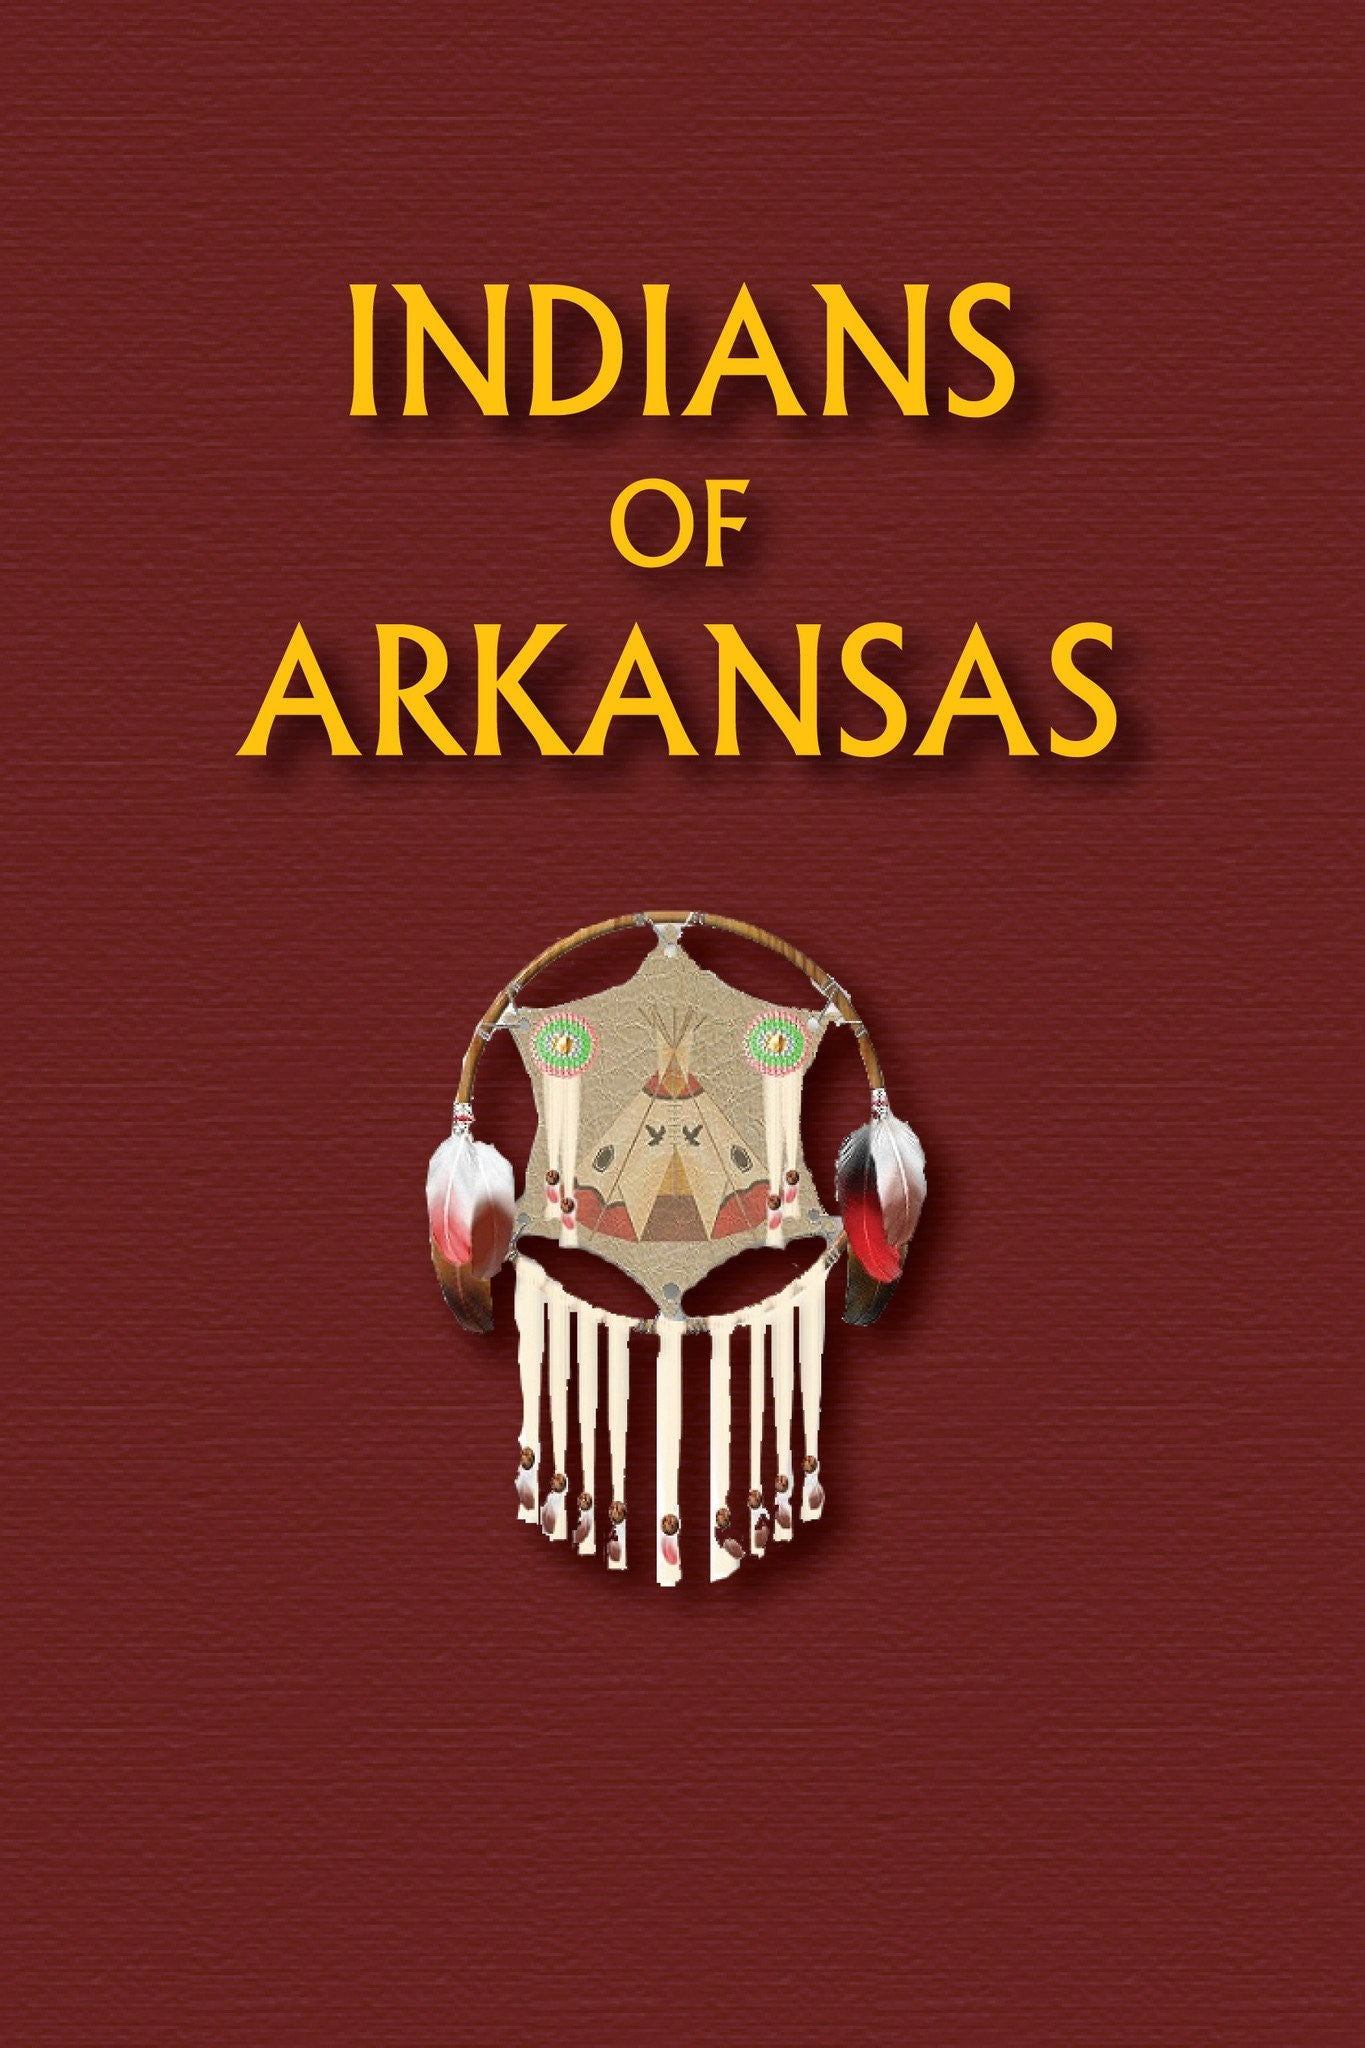 Indians of Arkansas